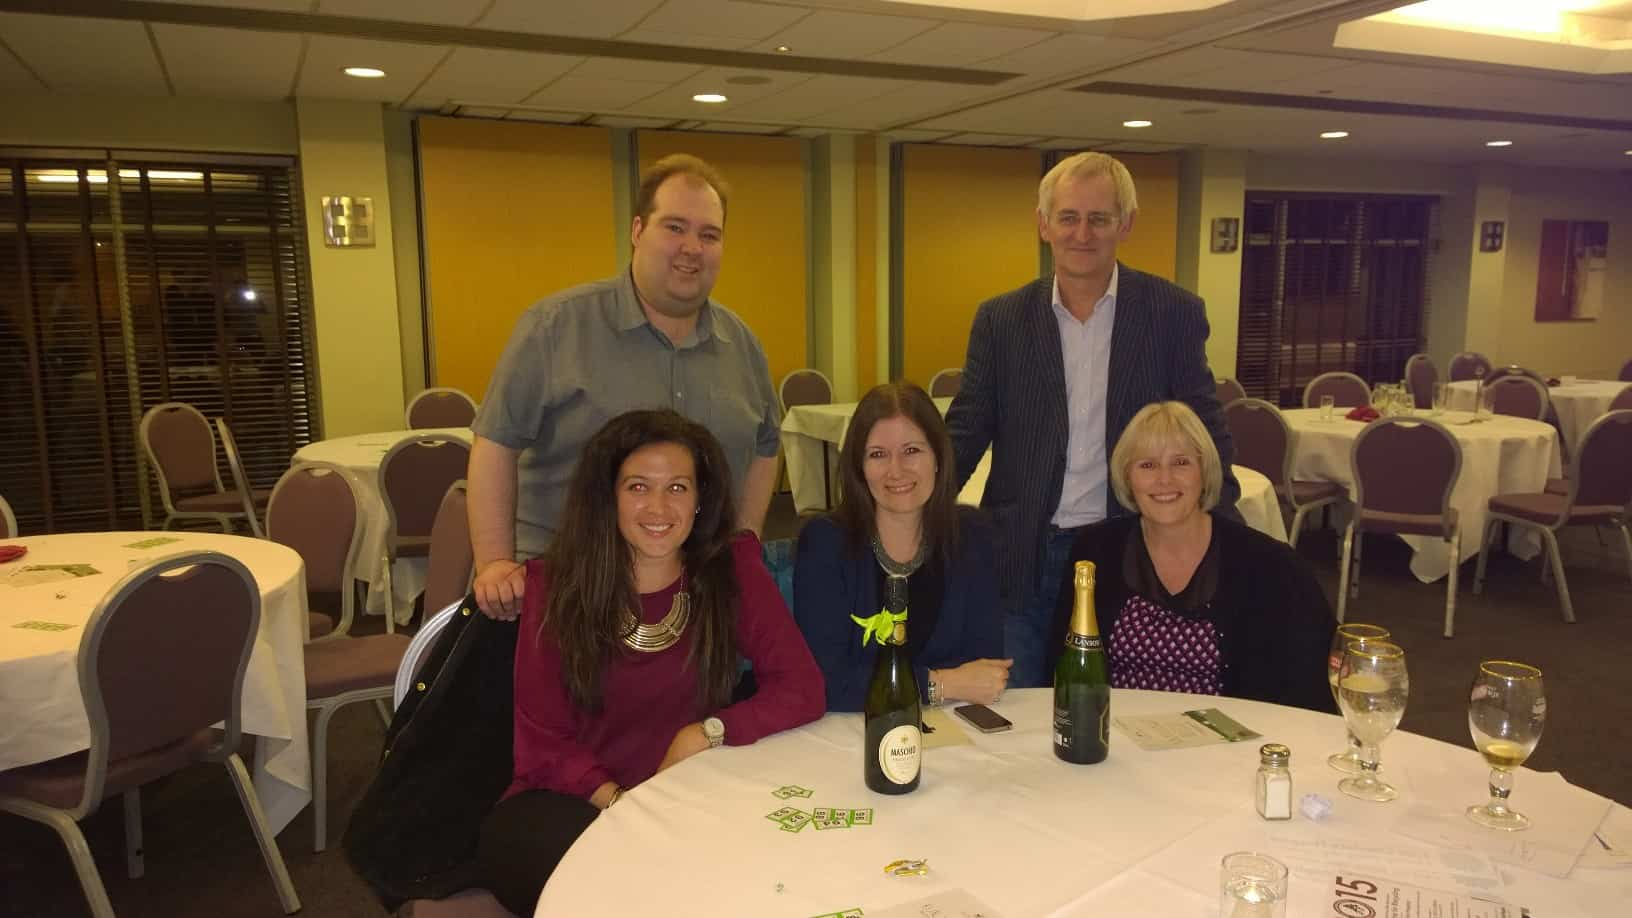 Blunts win charity quiz in support of East Cheshire Hospice